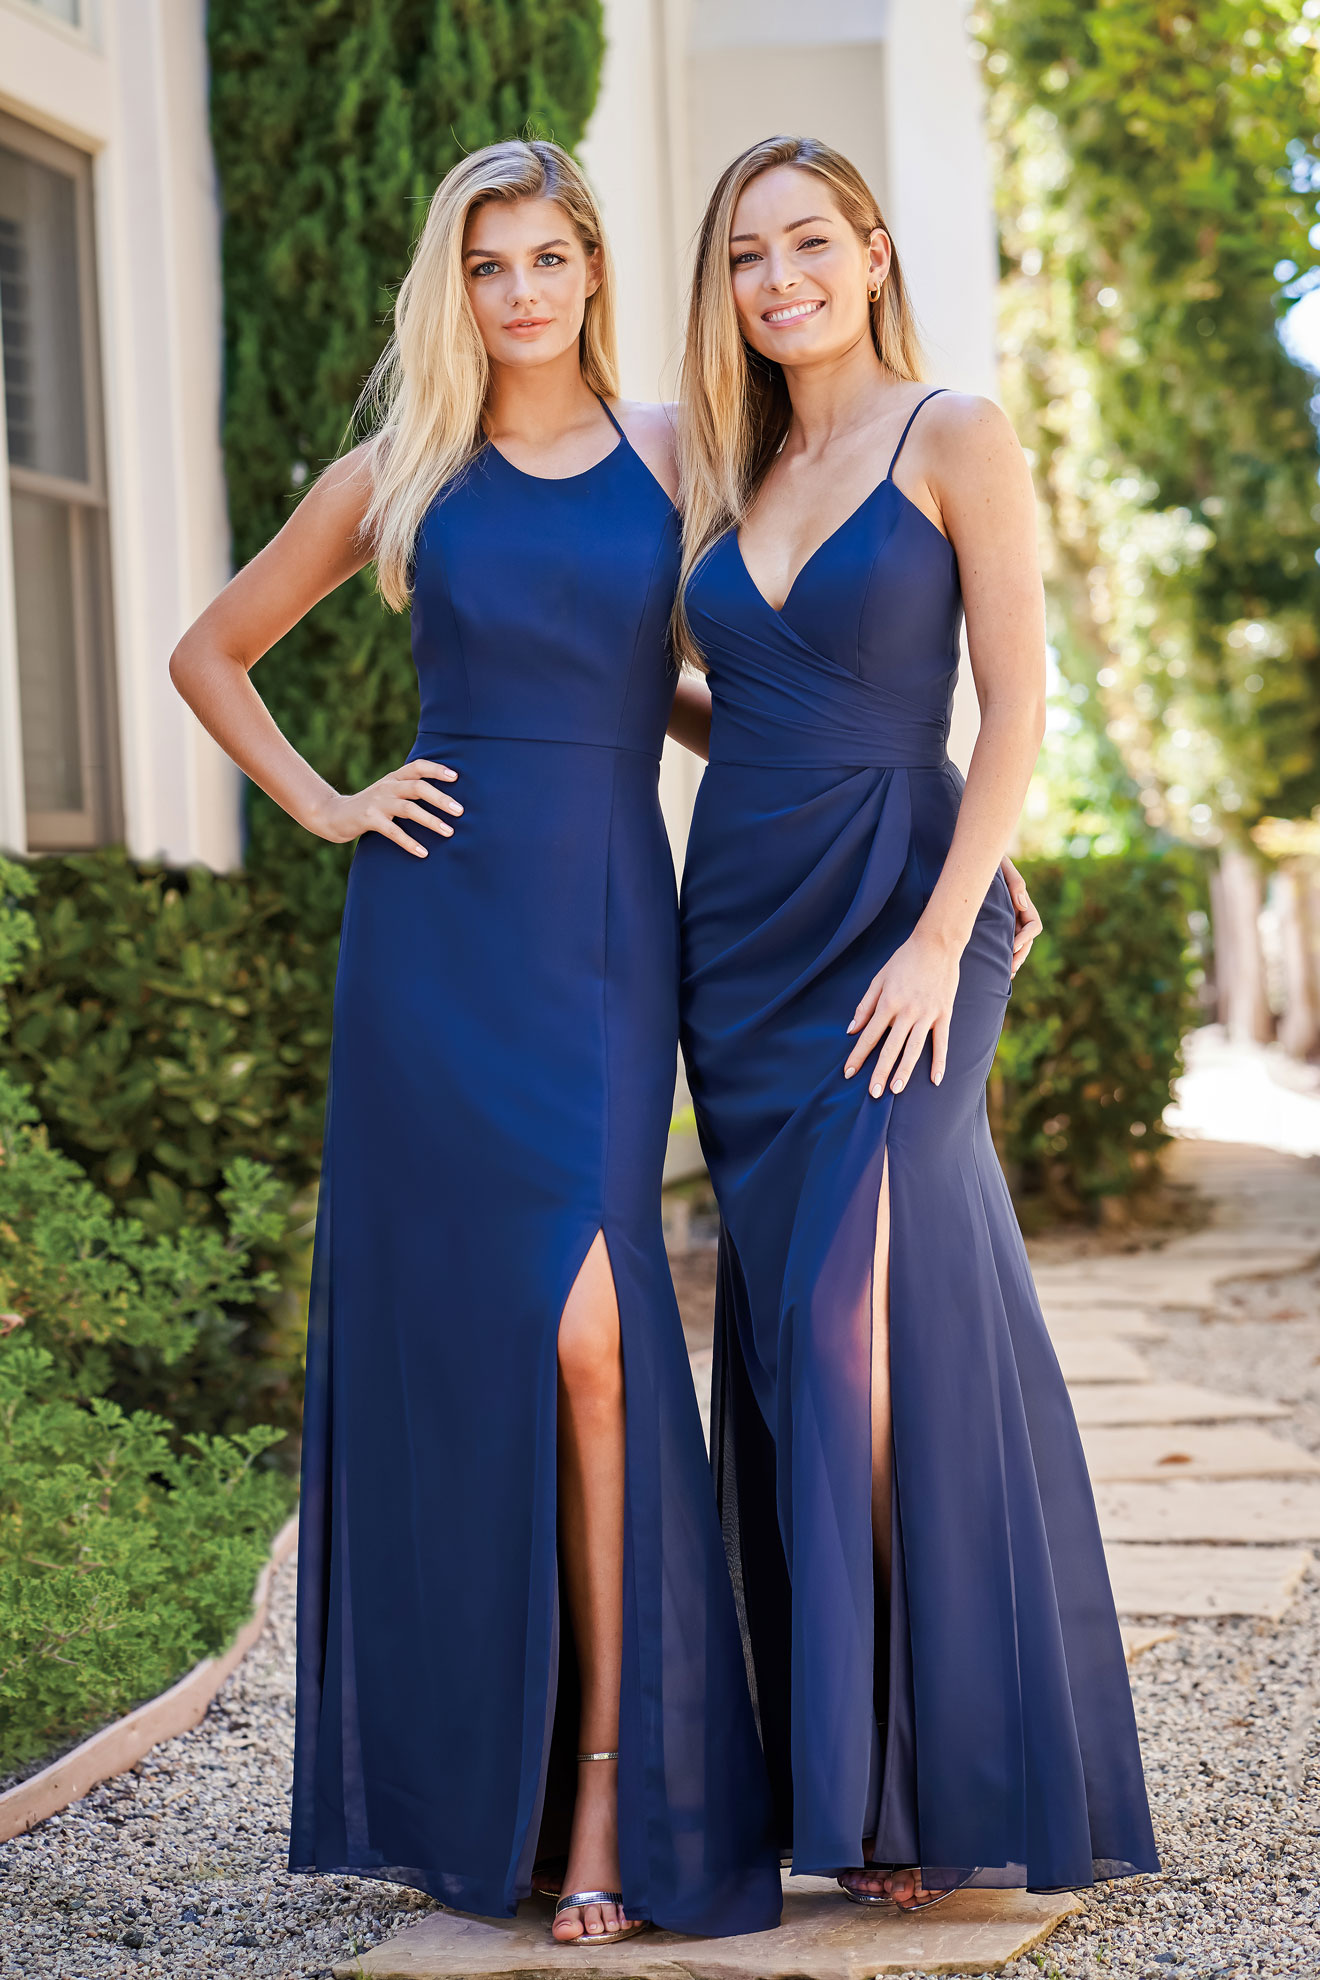 Jasmine Bridesmaids - Simple Chiffon Gowns with a Side Slit